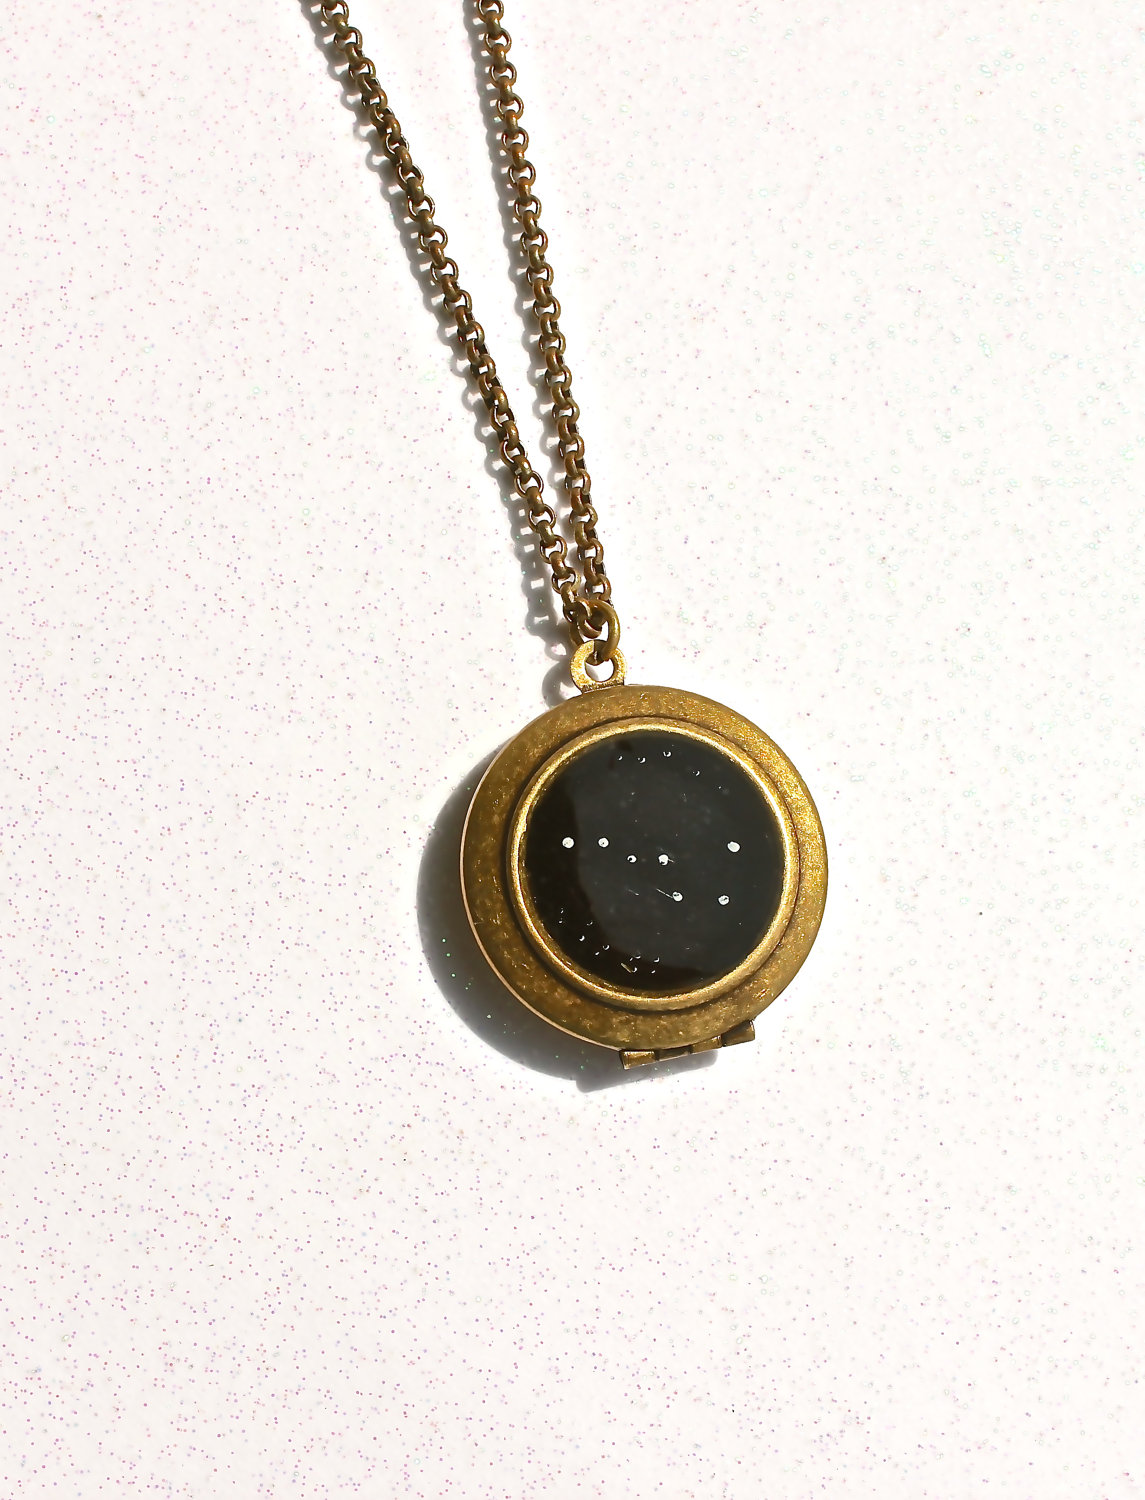 Big dipper constellation necklace locket hand painted jewelry unique